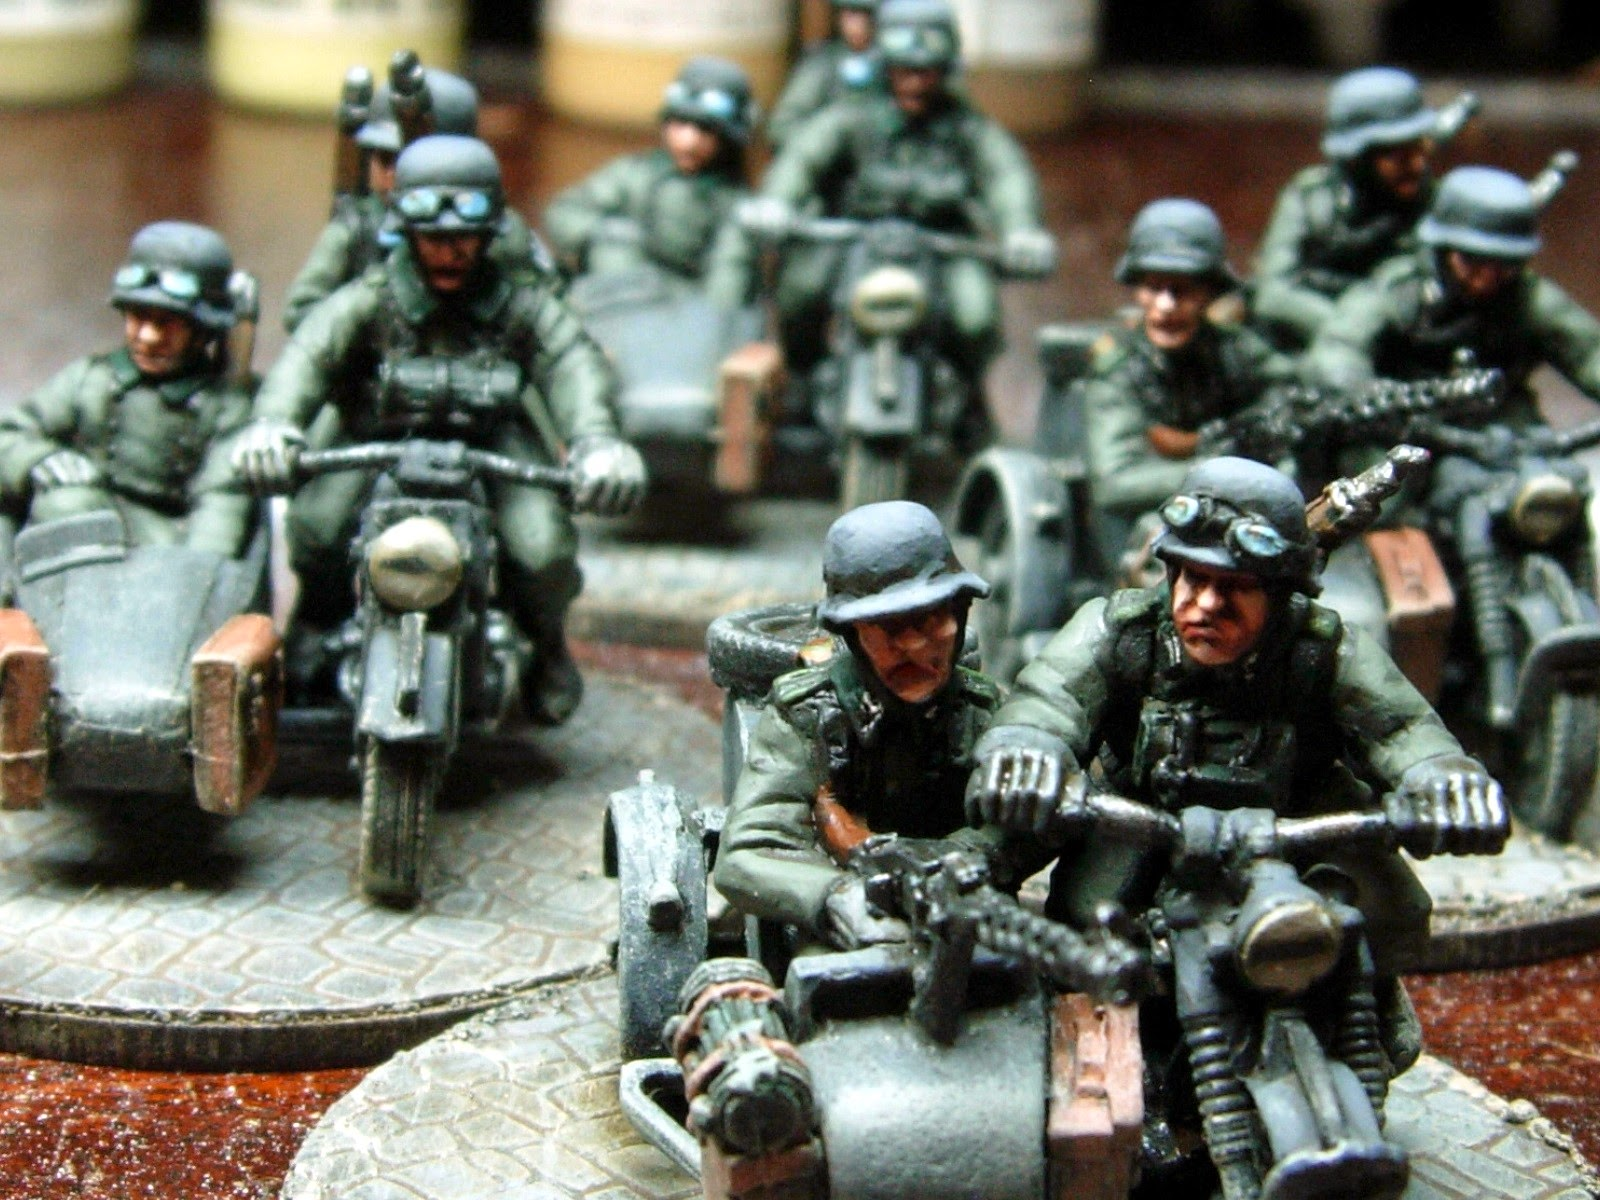 ww2 german motorcycles wargaming side cars room games plus whistle silver topic